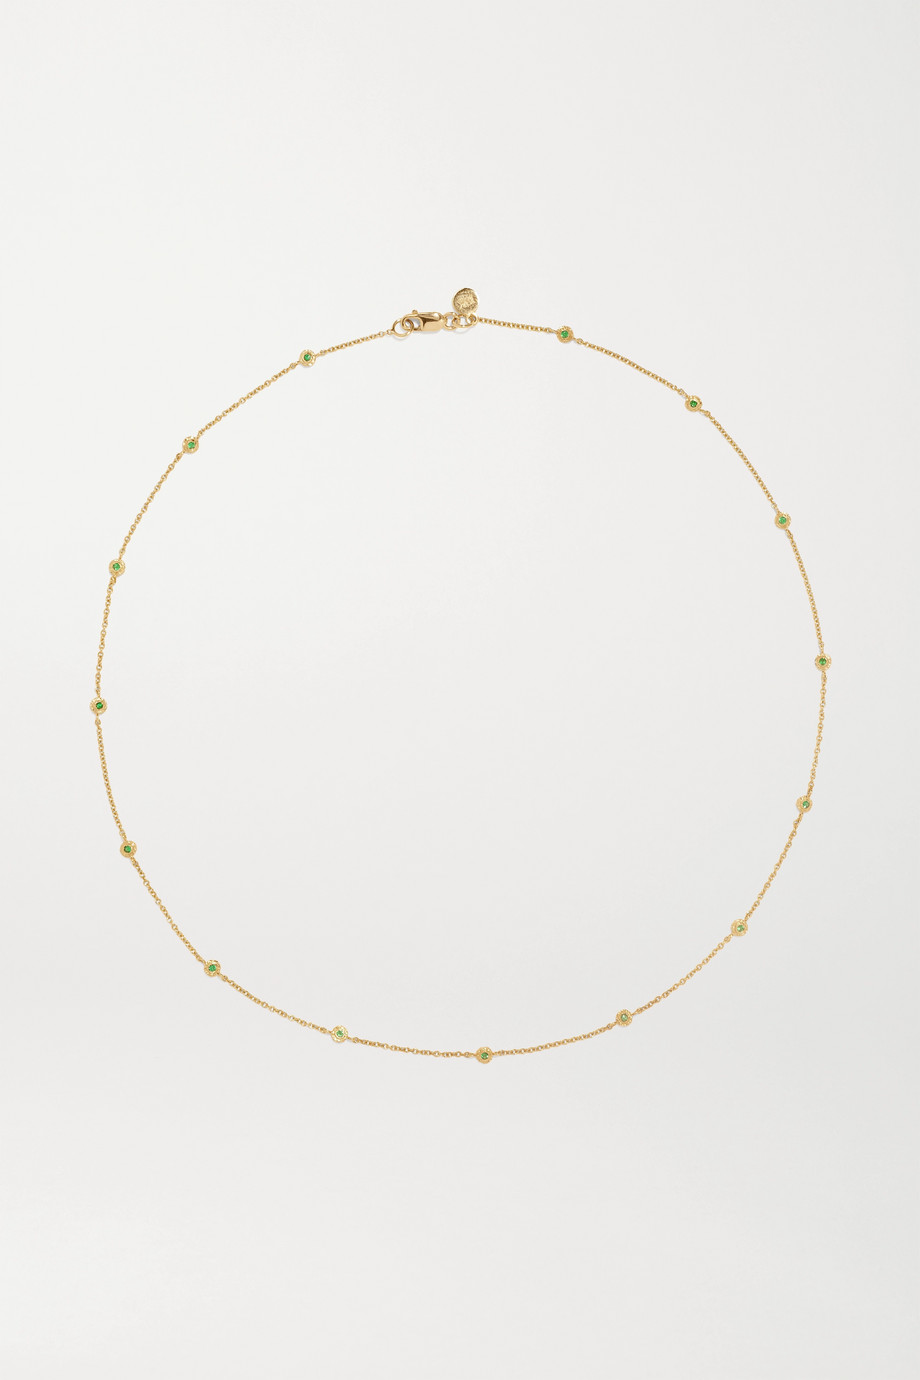 OCTAVIA ELIZABETH Nesting Gem 18-karat gold emerald necklace